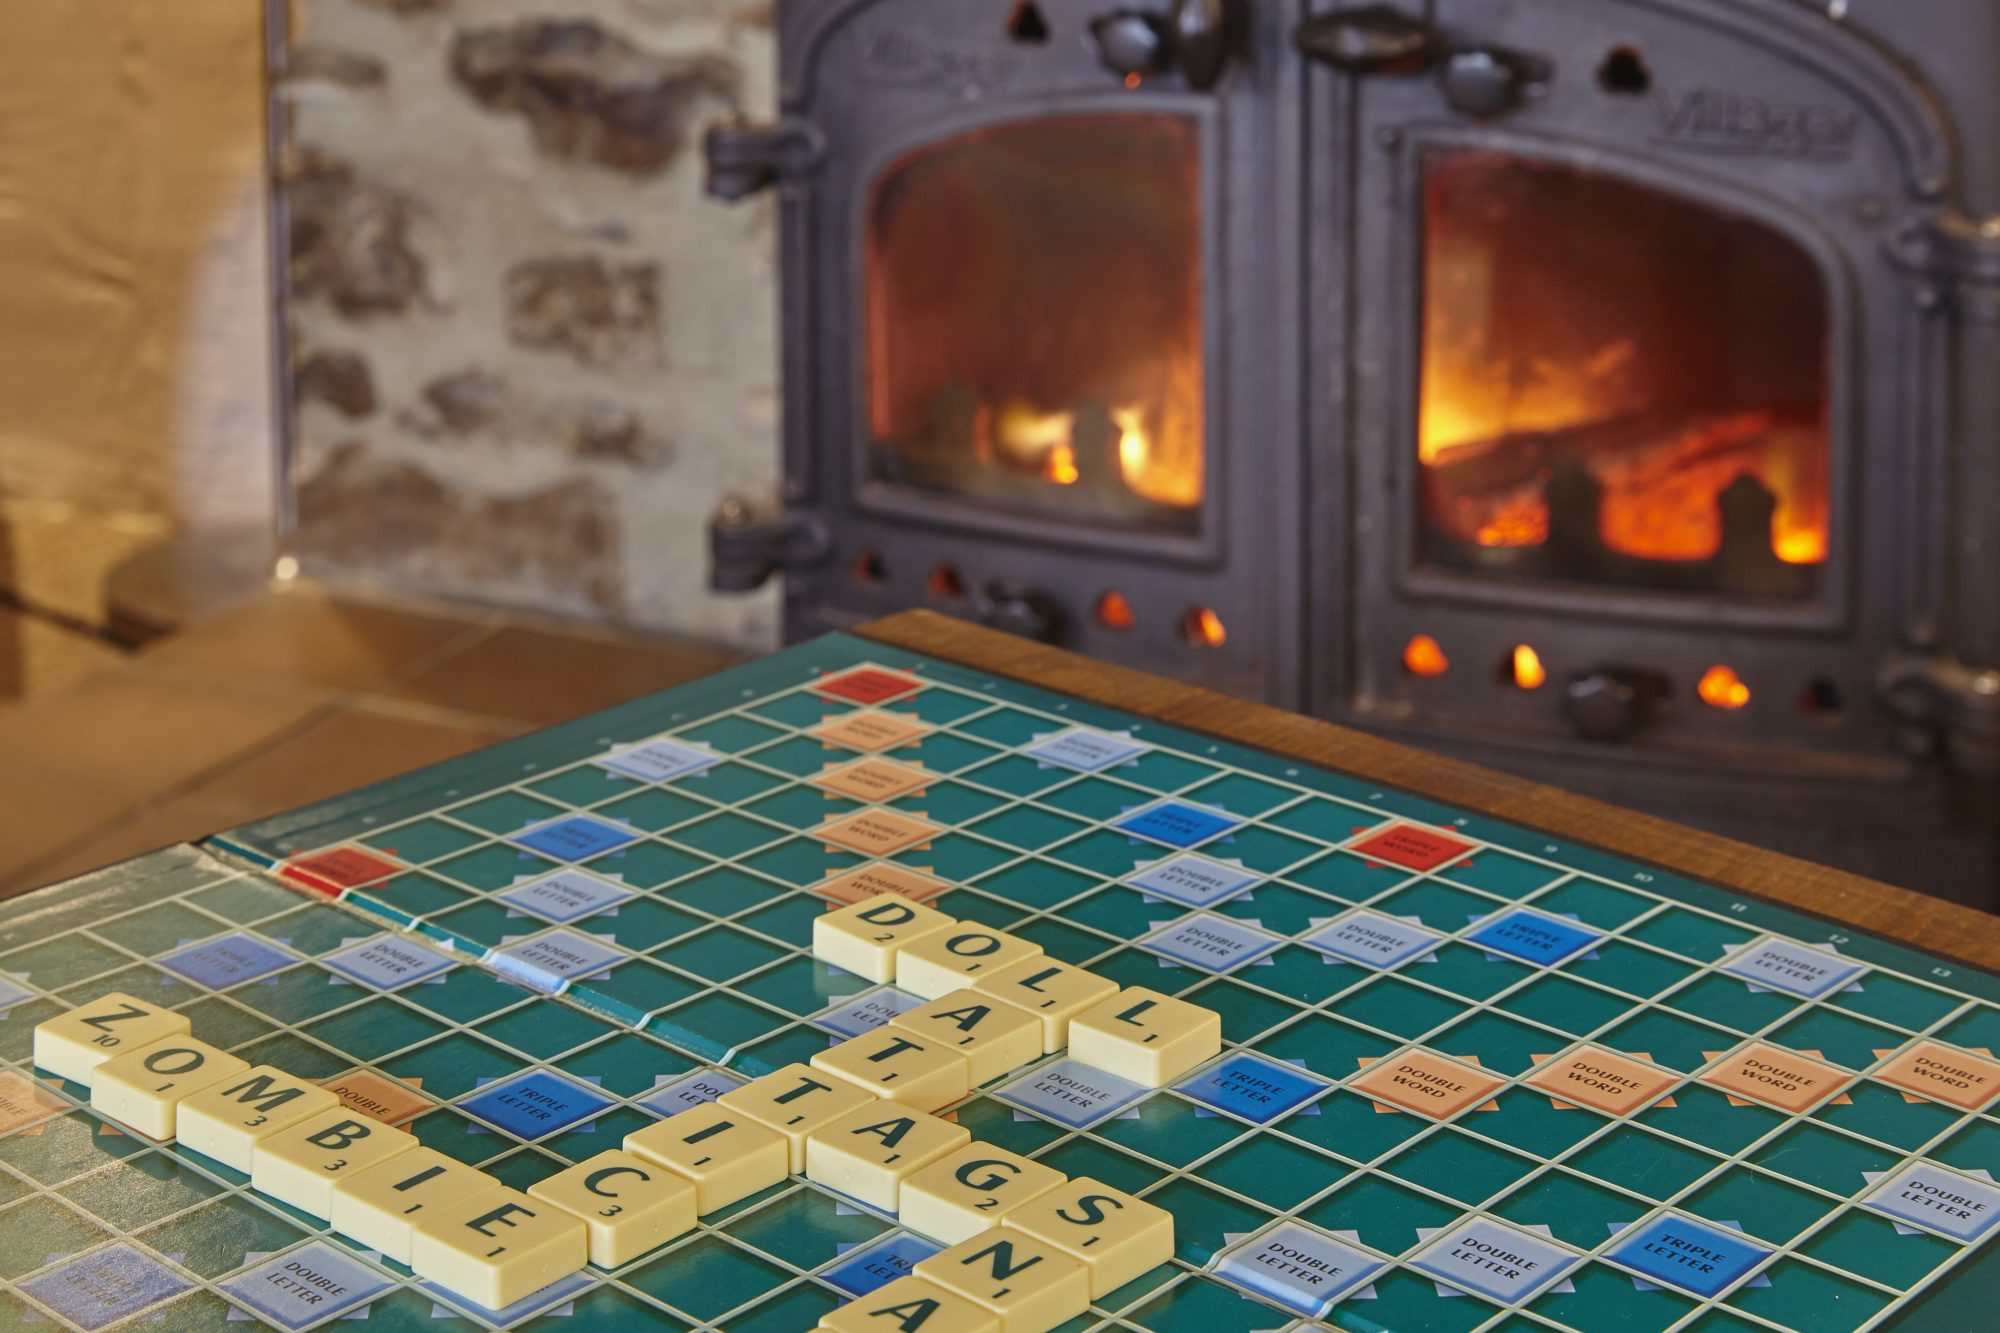 Games in front of the fire